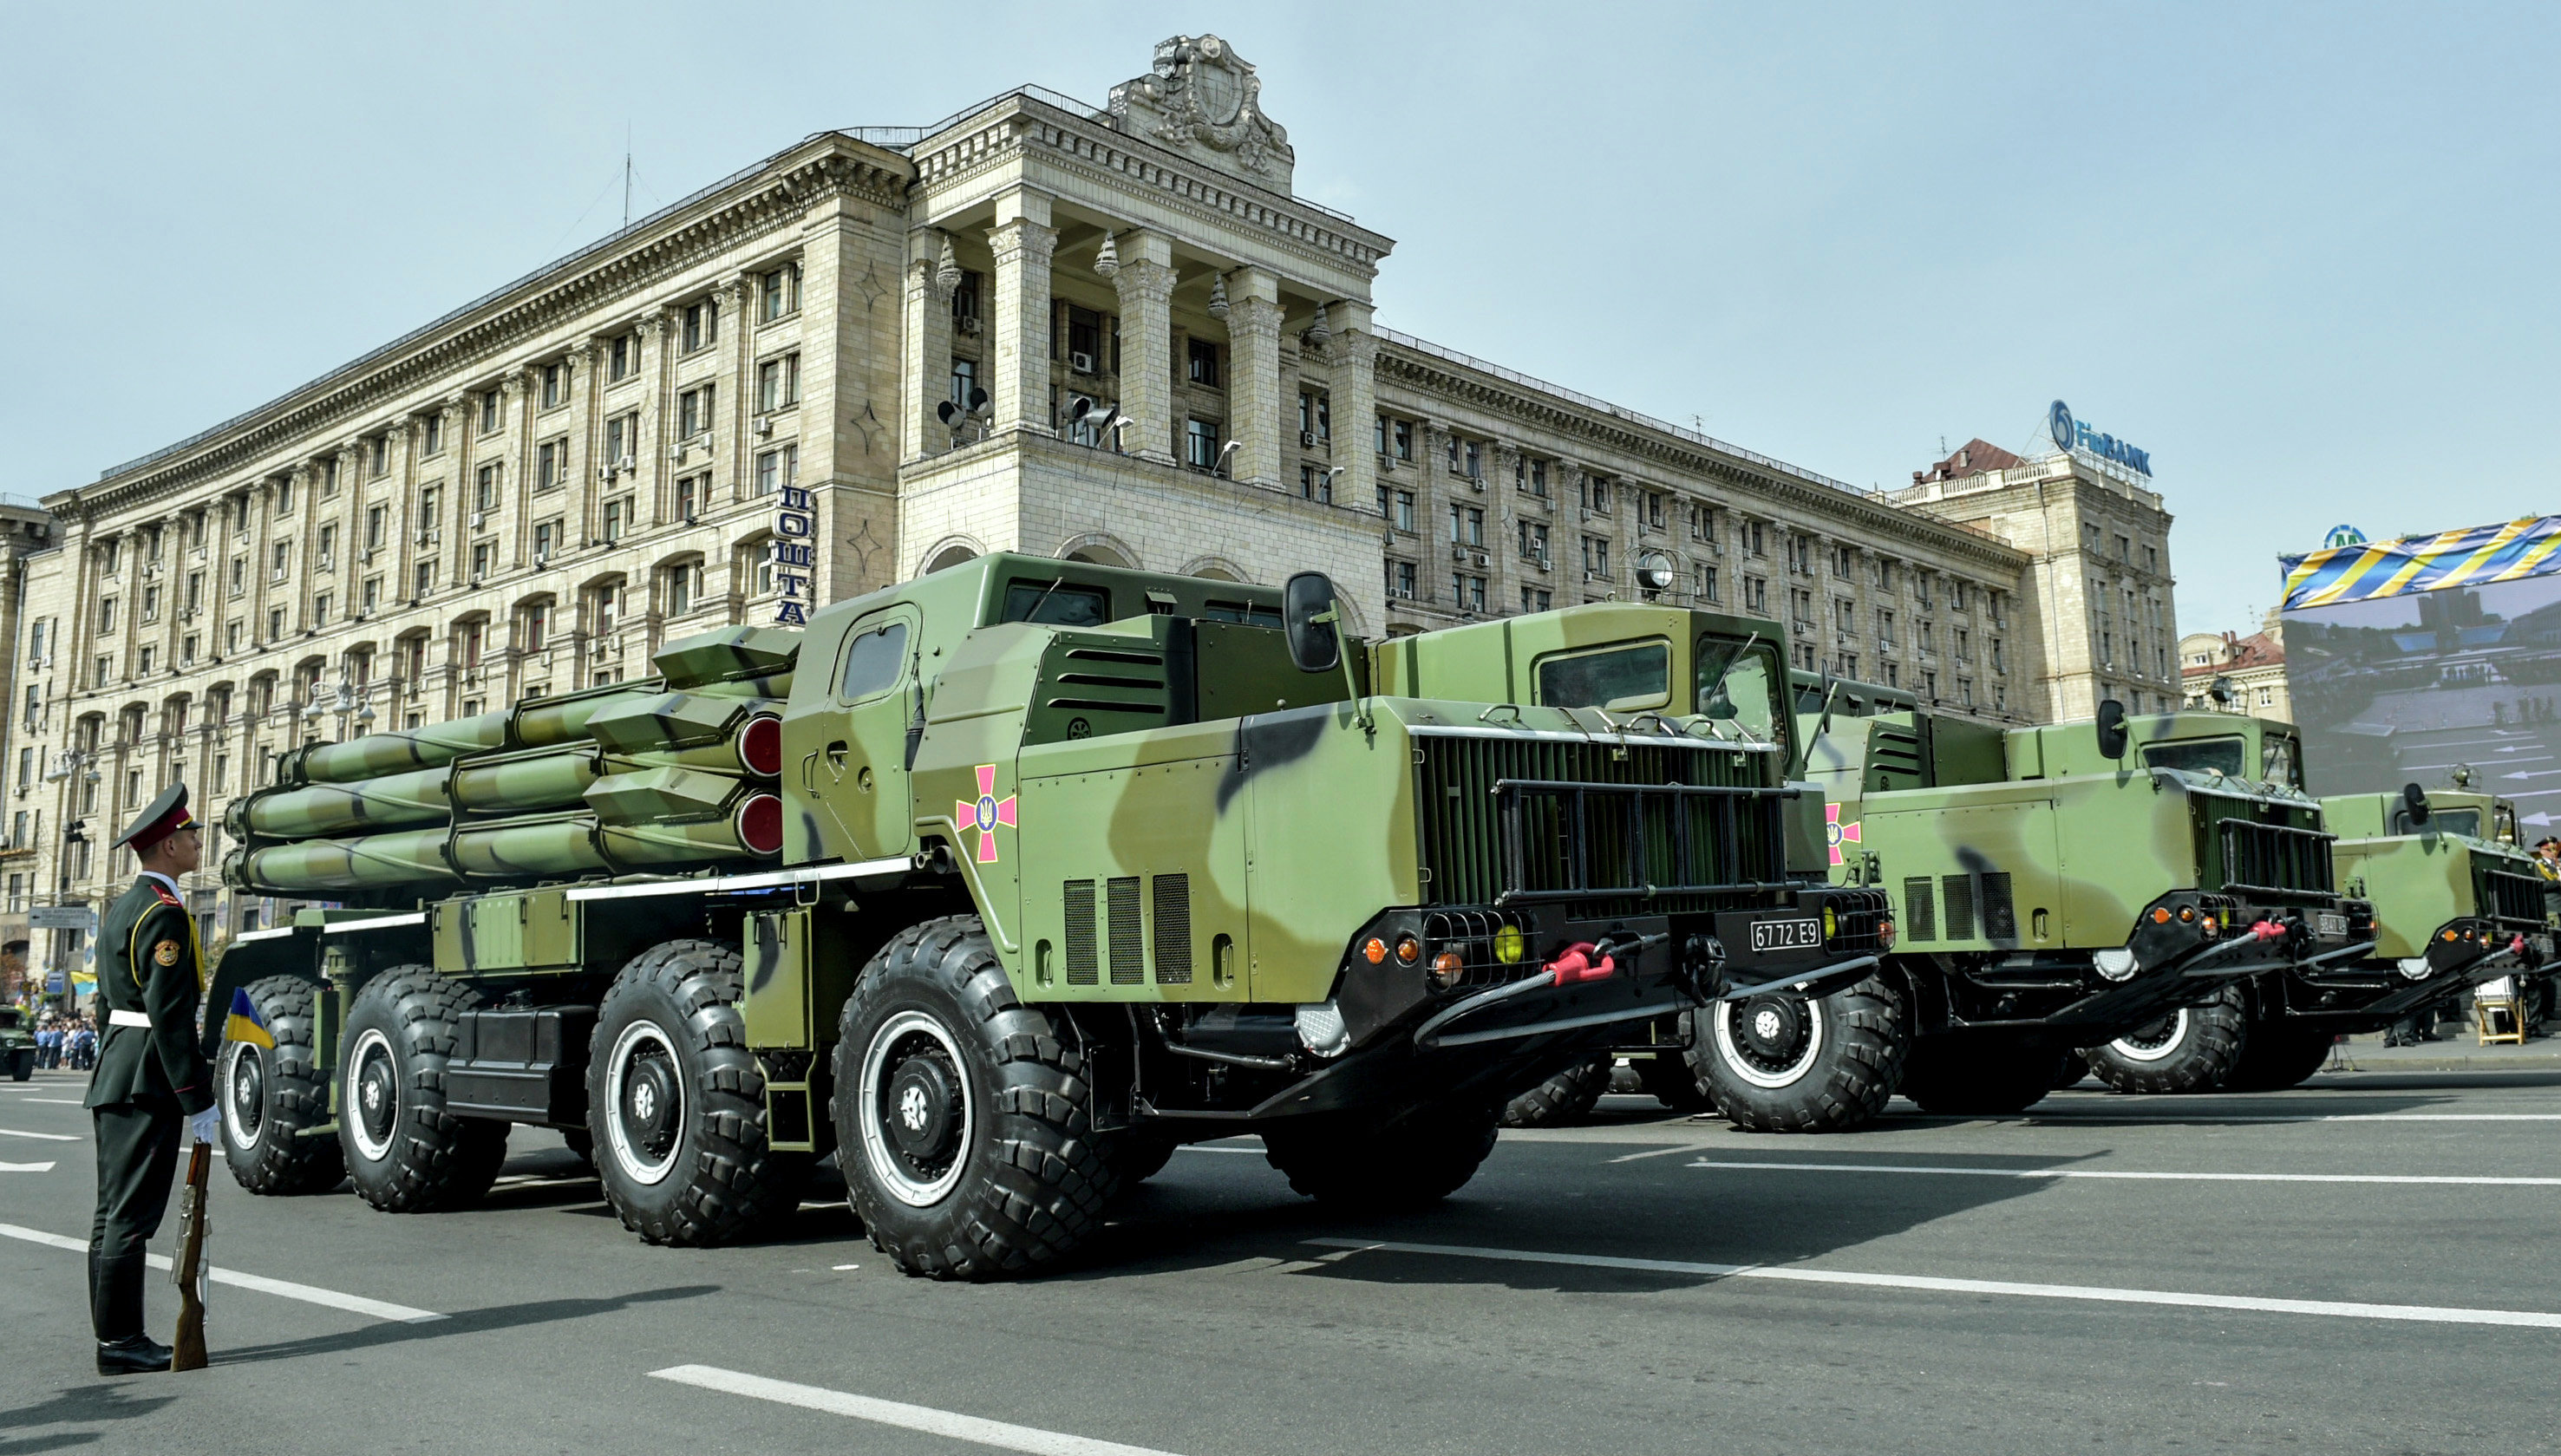 Military equipment of the Ukrainian Armed Forces parades through Khreshchatyk Street in Kiev during Ukrainian Independence Day celebrations